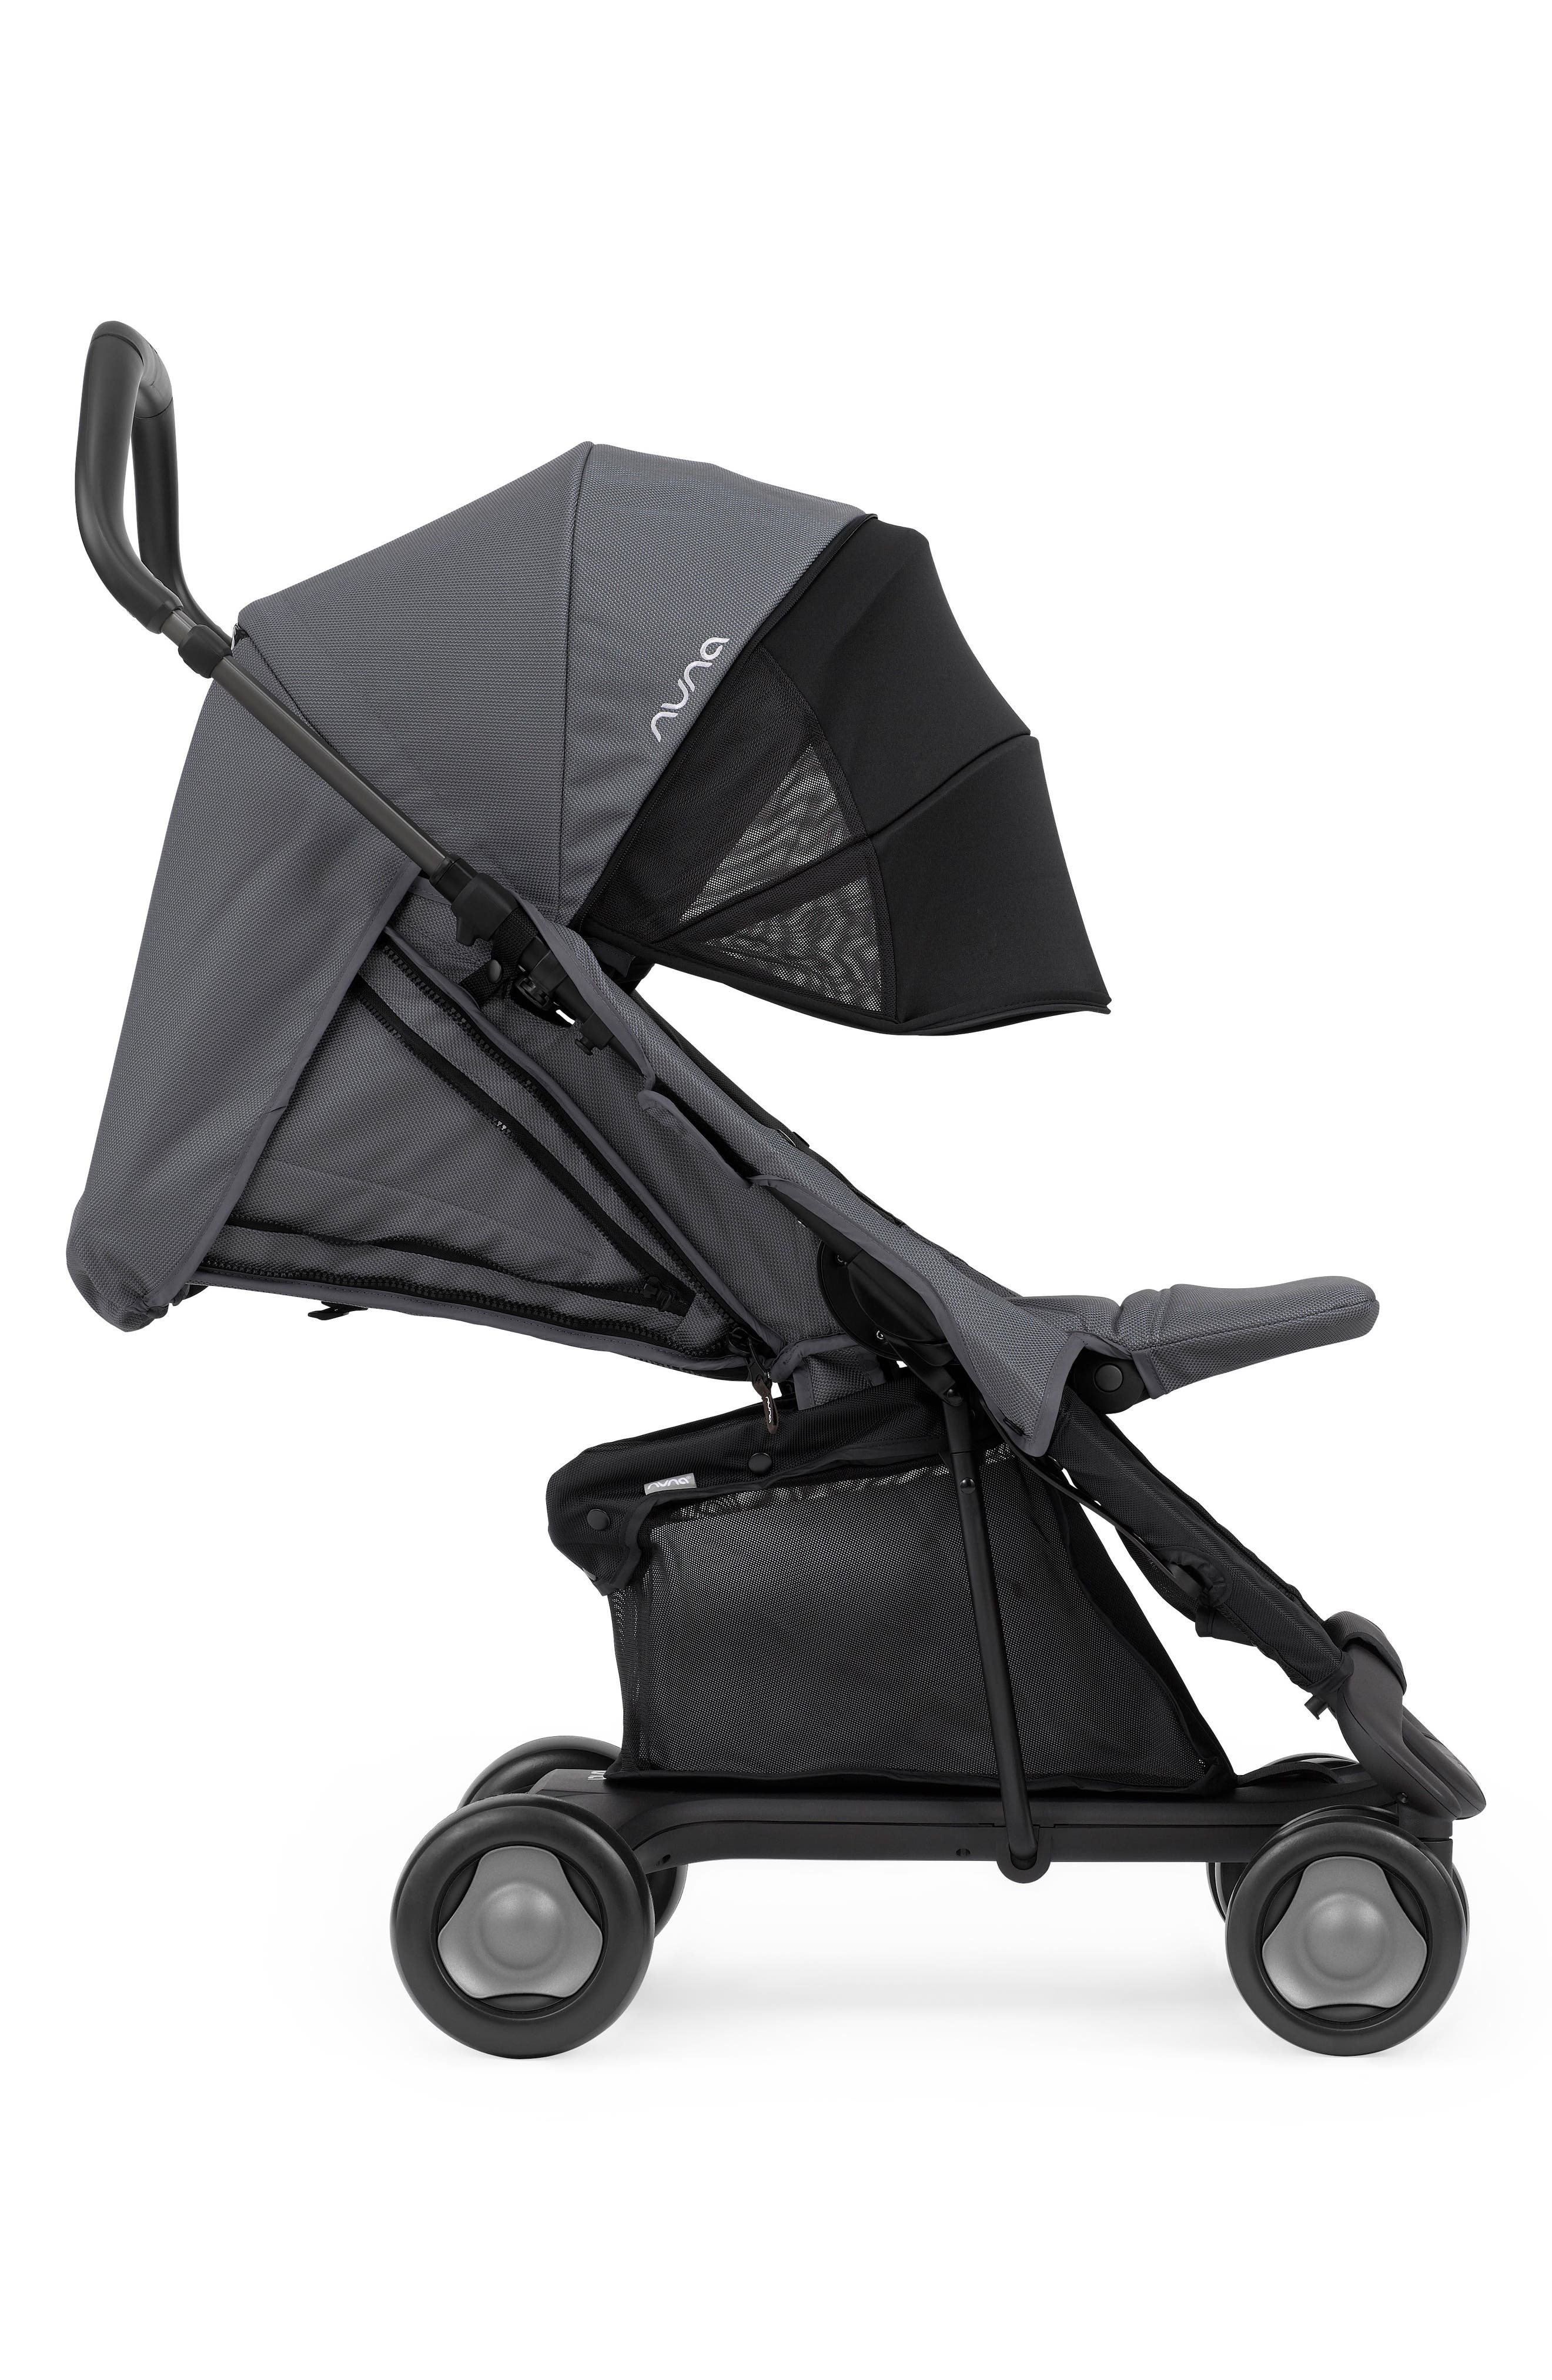 PEPP<sup>™</sup> Stroller & PIPA<sup>™</sup> Car Seat Travel System,                             Alternate thumbnail 2, color,                             GRAPHITE